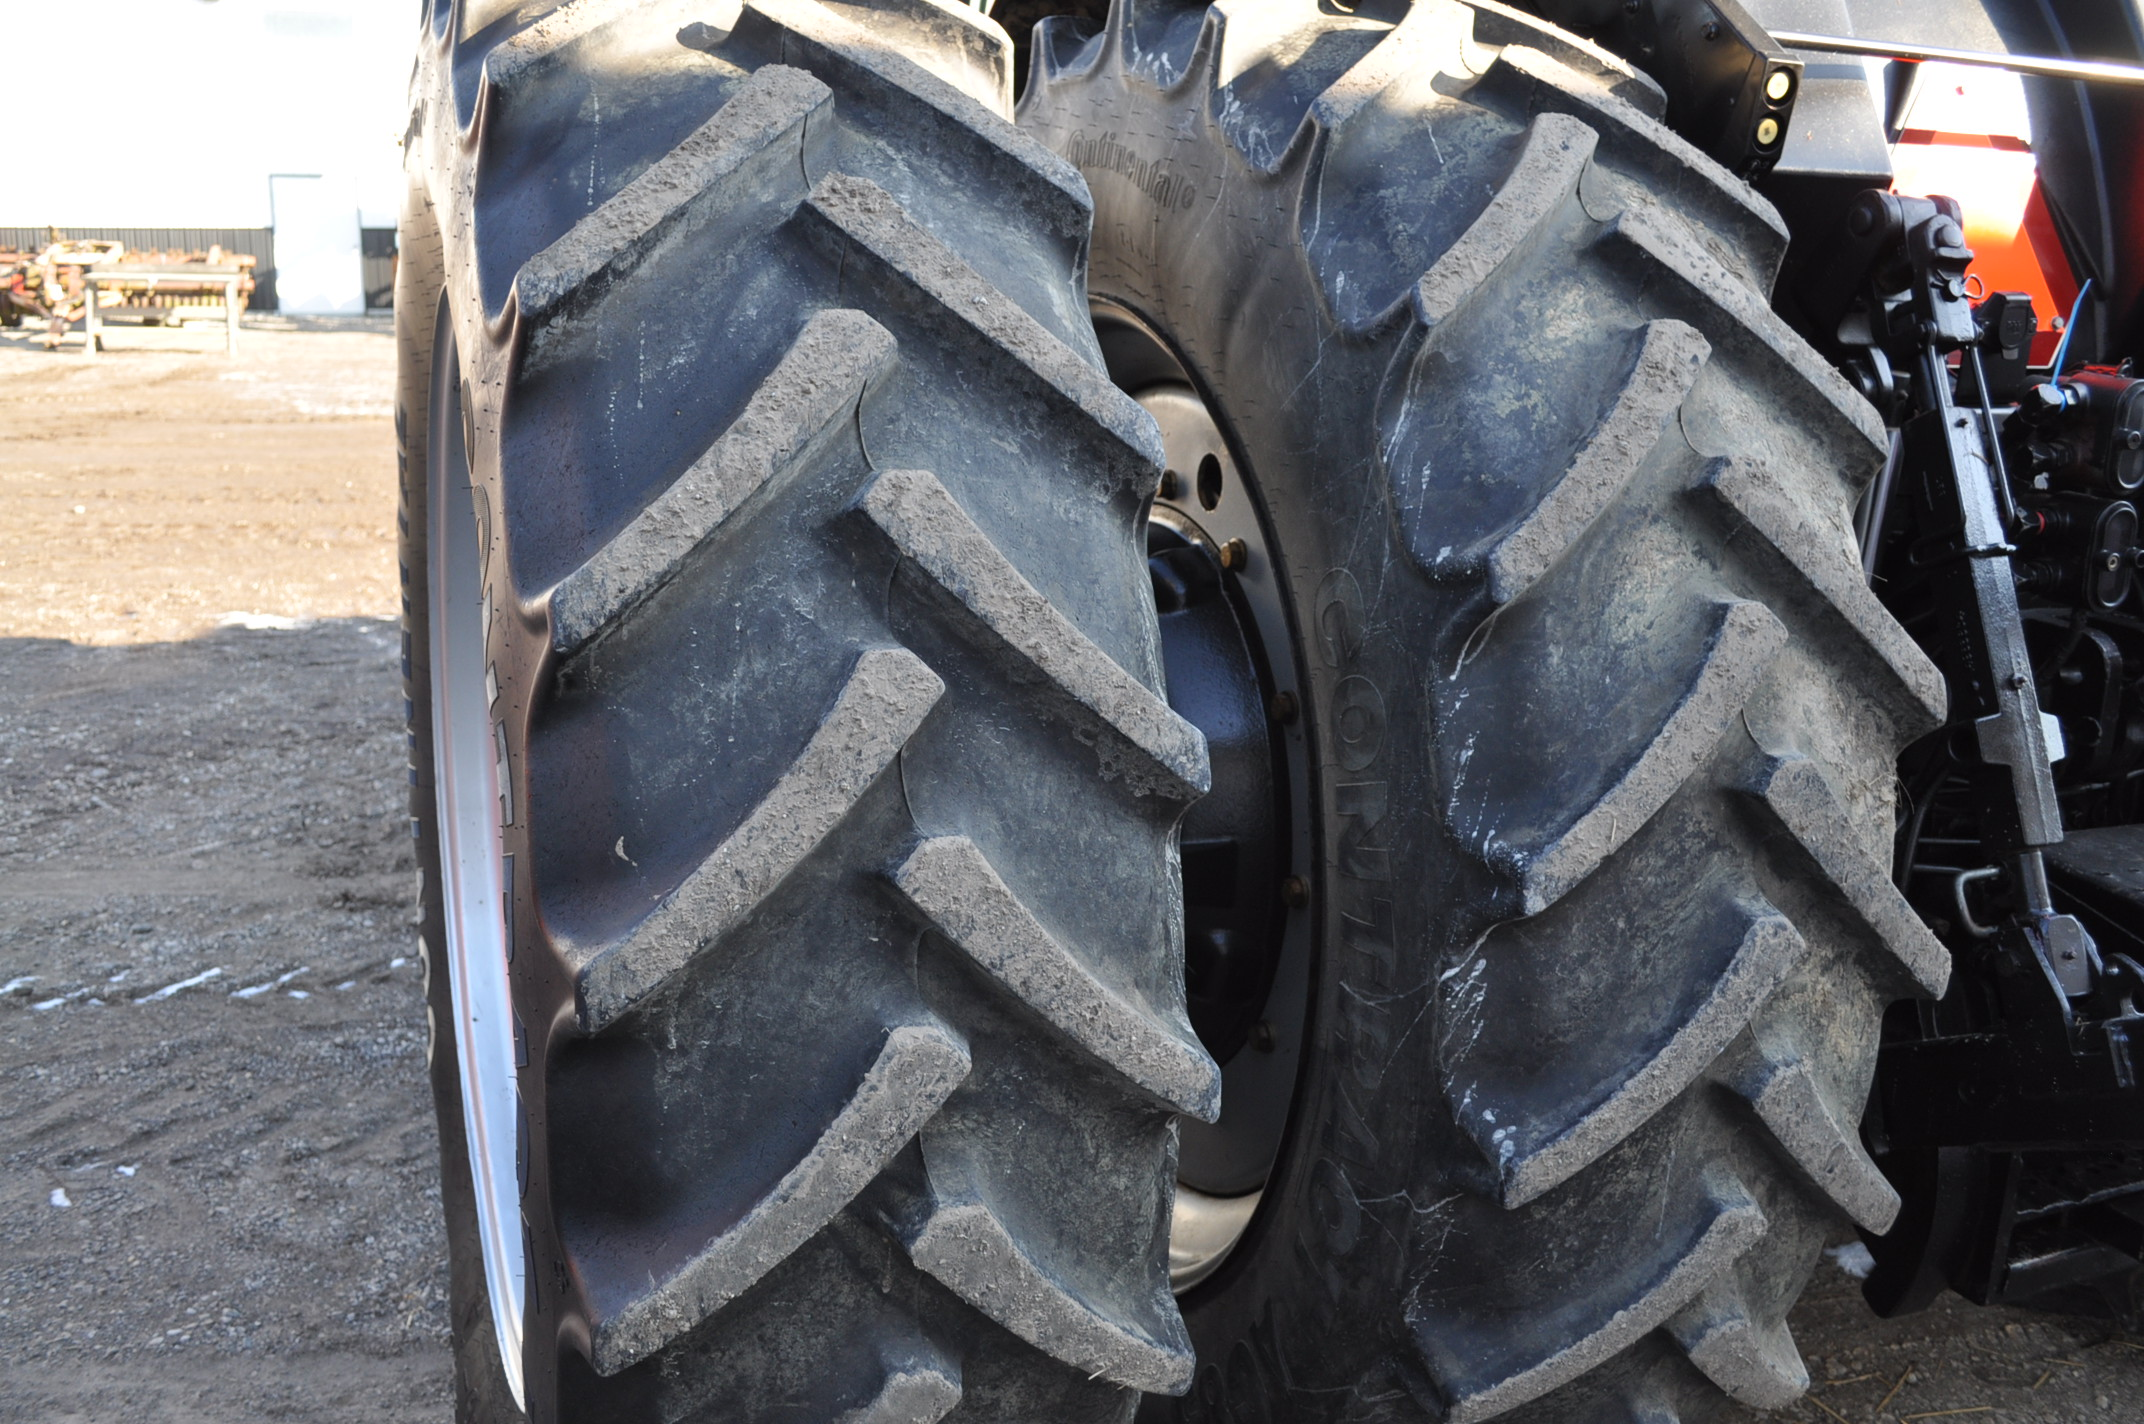 Case IH 7240 MFWD tractor, 460/85R46 rear duals, 420/85R30 front, 18 spd powershift, 4 reverse, - Image 8 of 20